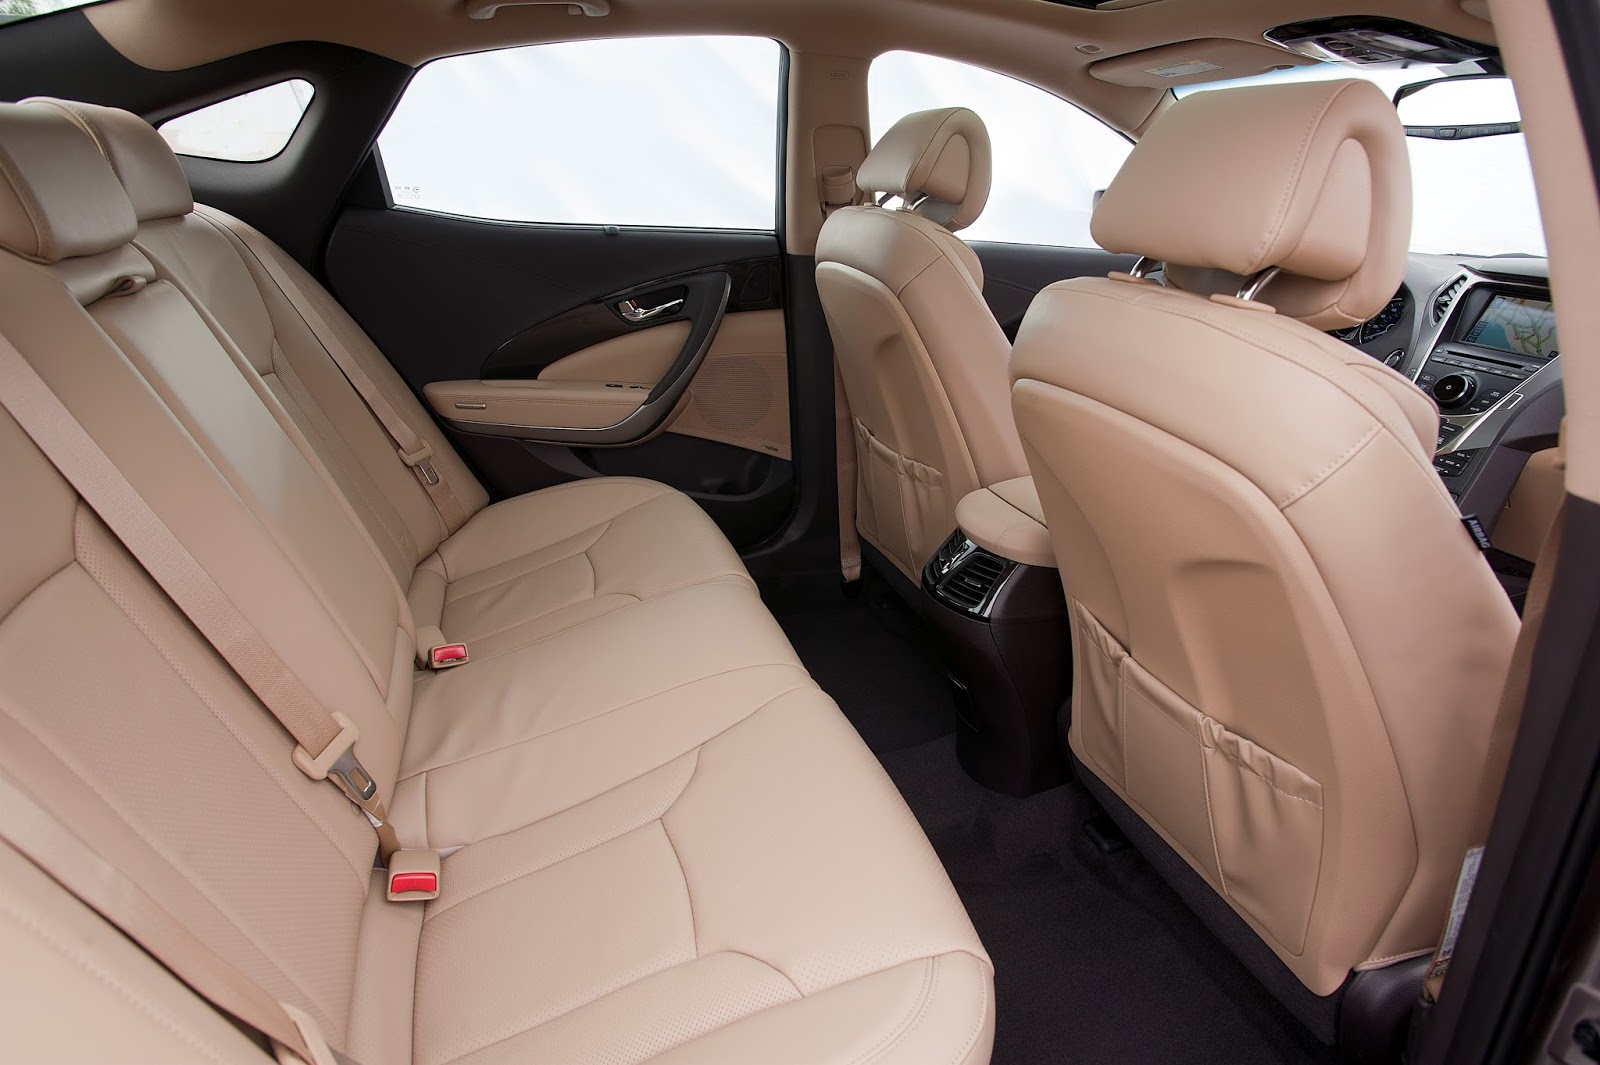 Interior view of 2014 Hyundai Azera